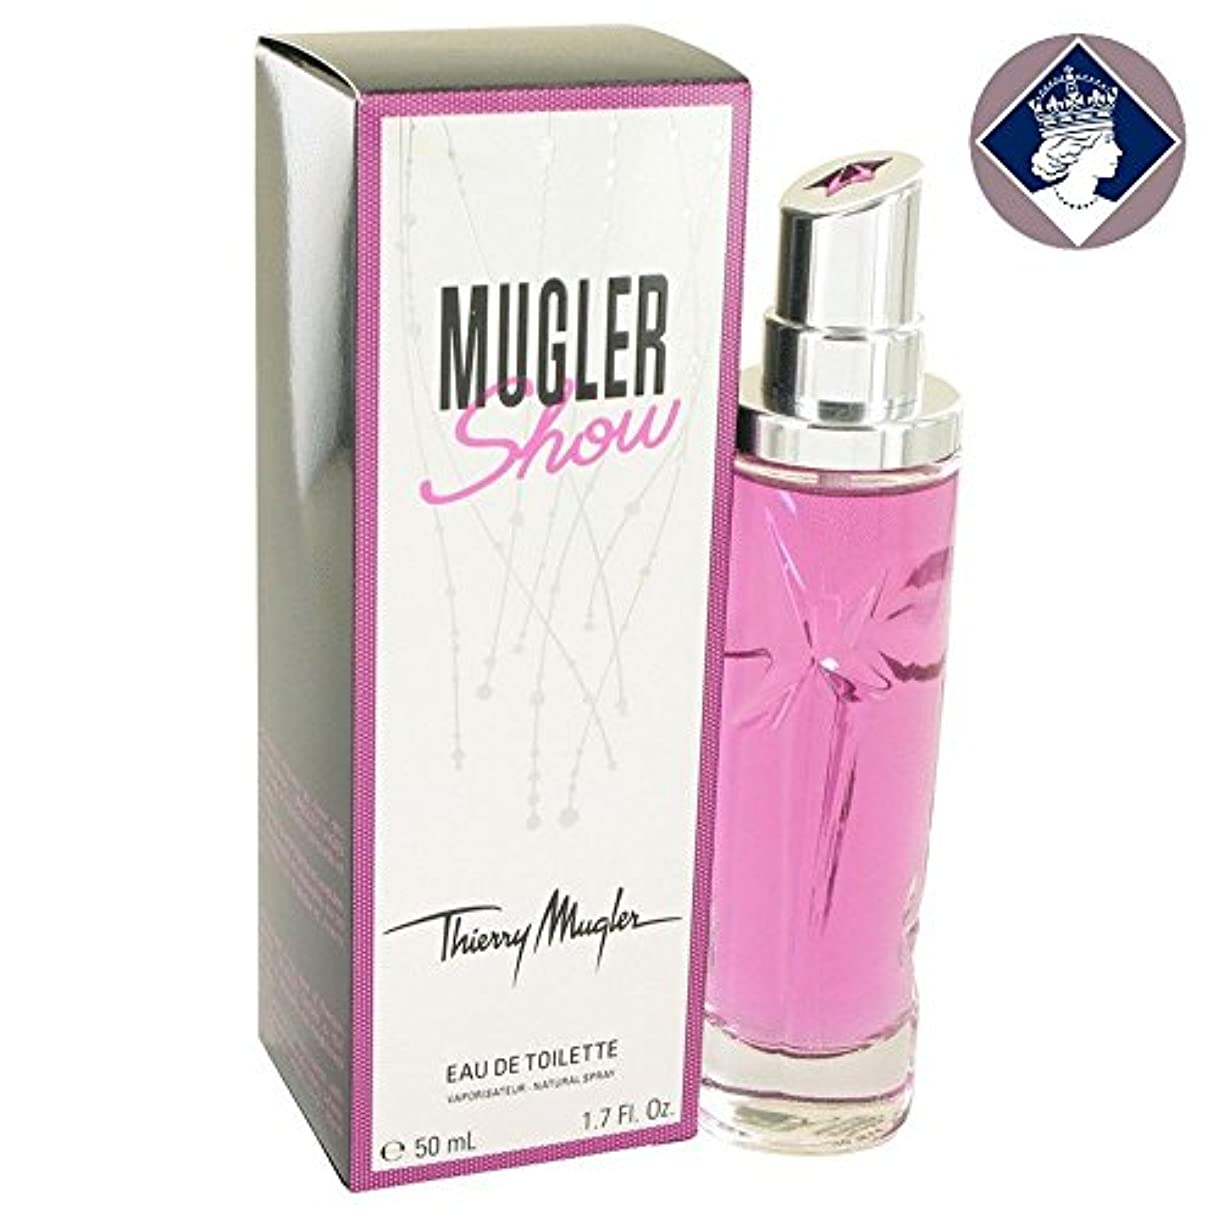 あそこエンジニアリング見捨てるThierry Mugler Show 50ml/1.7oz Eau De Toilette Spray Perfume Fragrance for Women